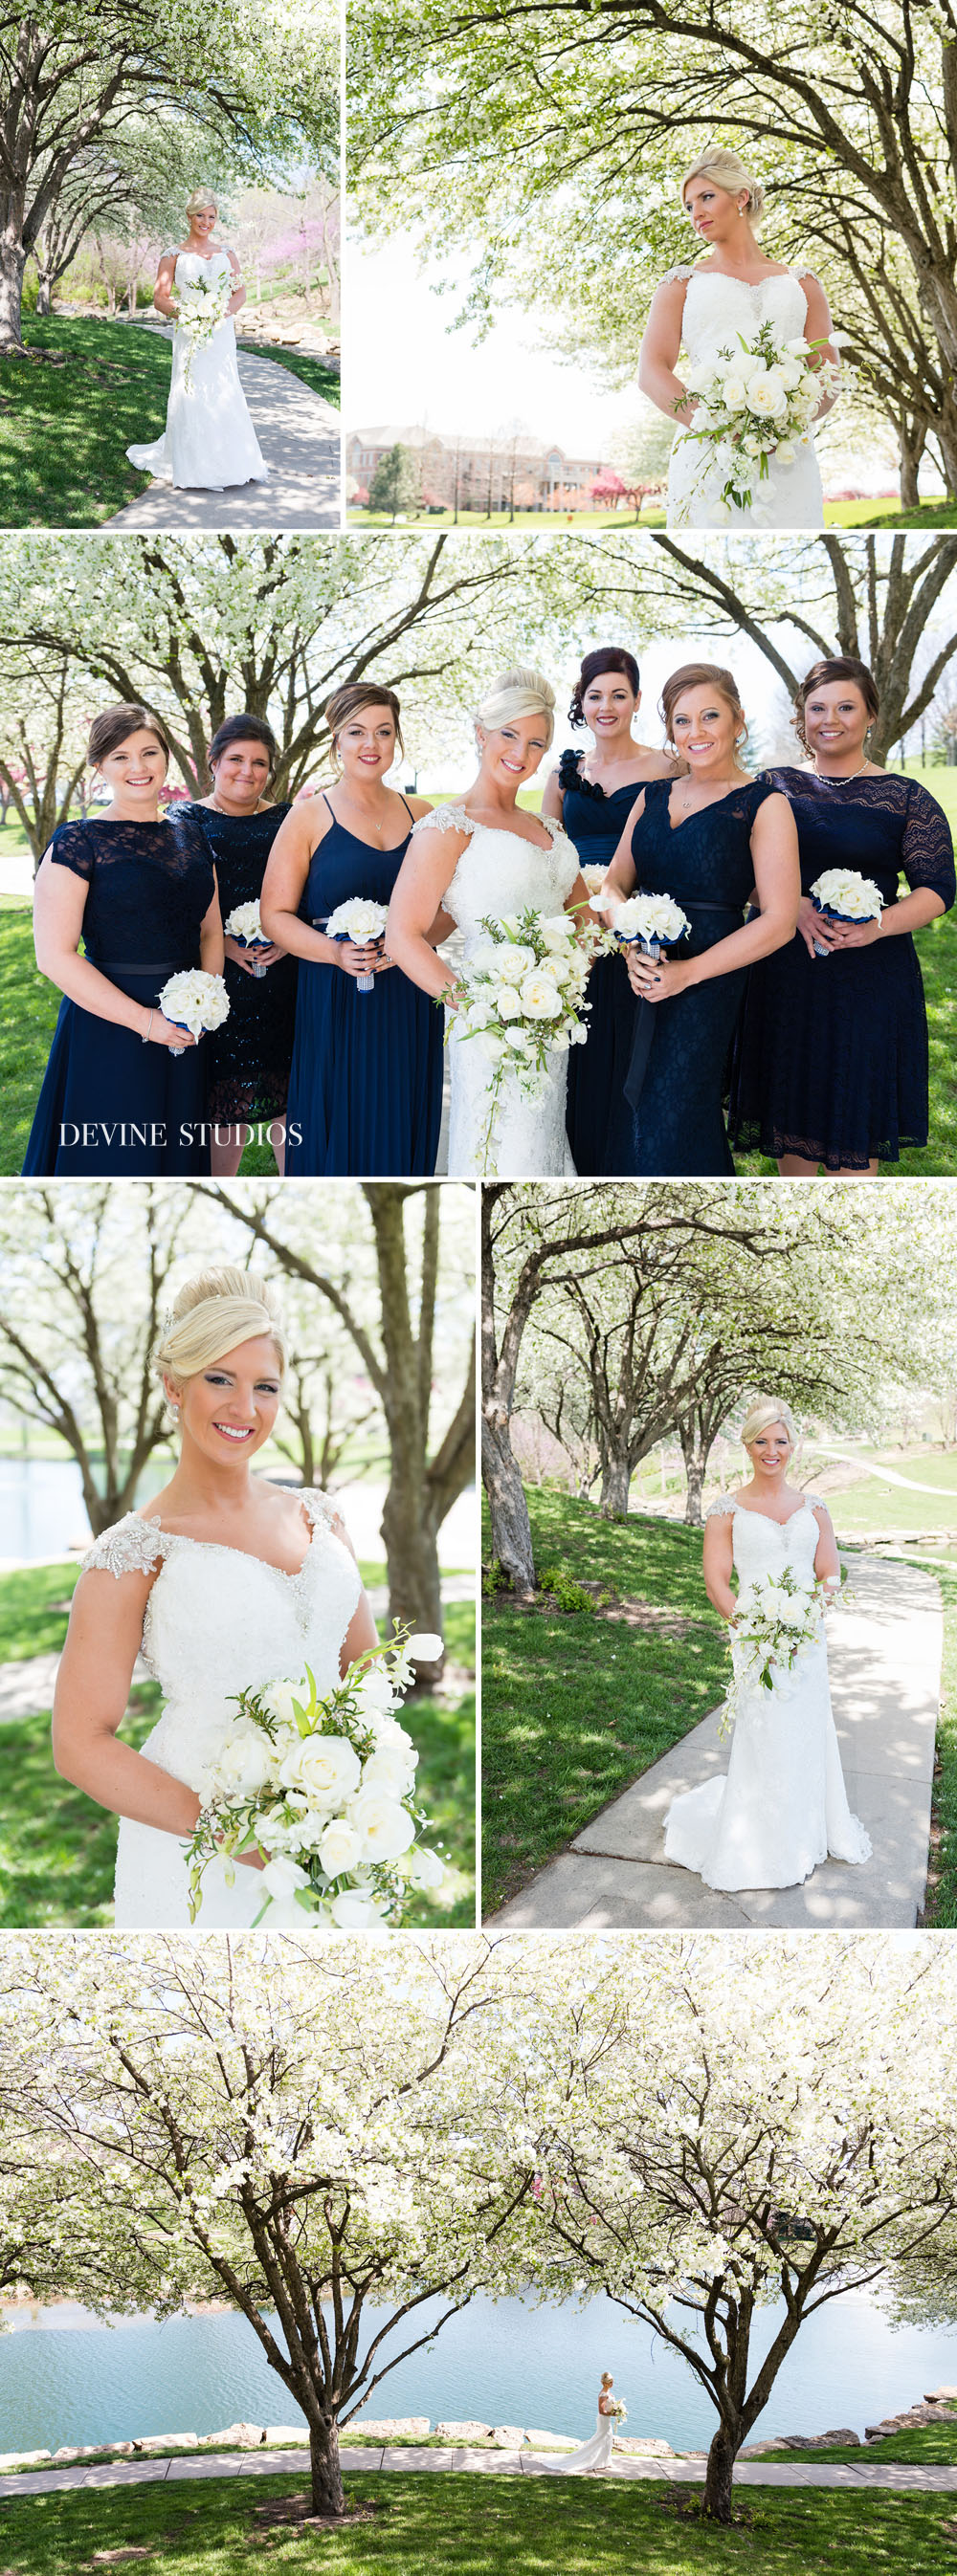 http://devinestudios.com/boudoir/wp-content/uploads/2016/05/10-839-post/Kansas-City-Wedding-Photography-Town-Pavilion-photojournalist-photographers6.jpg